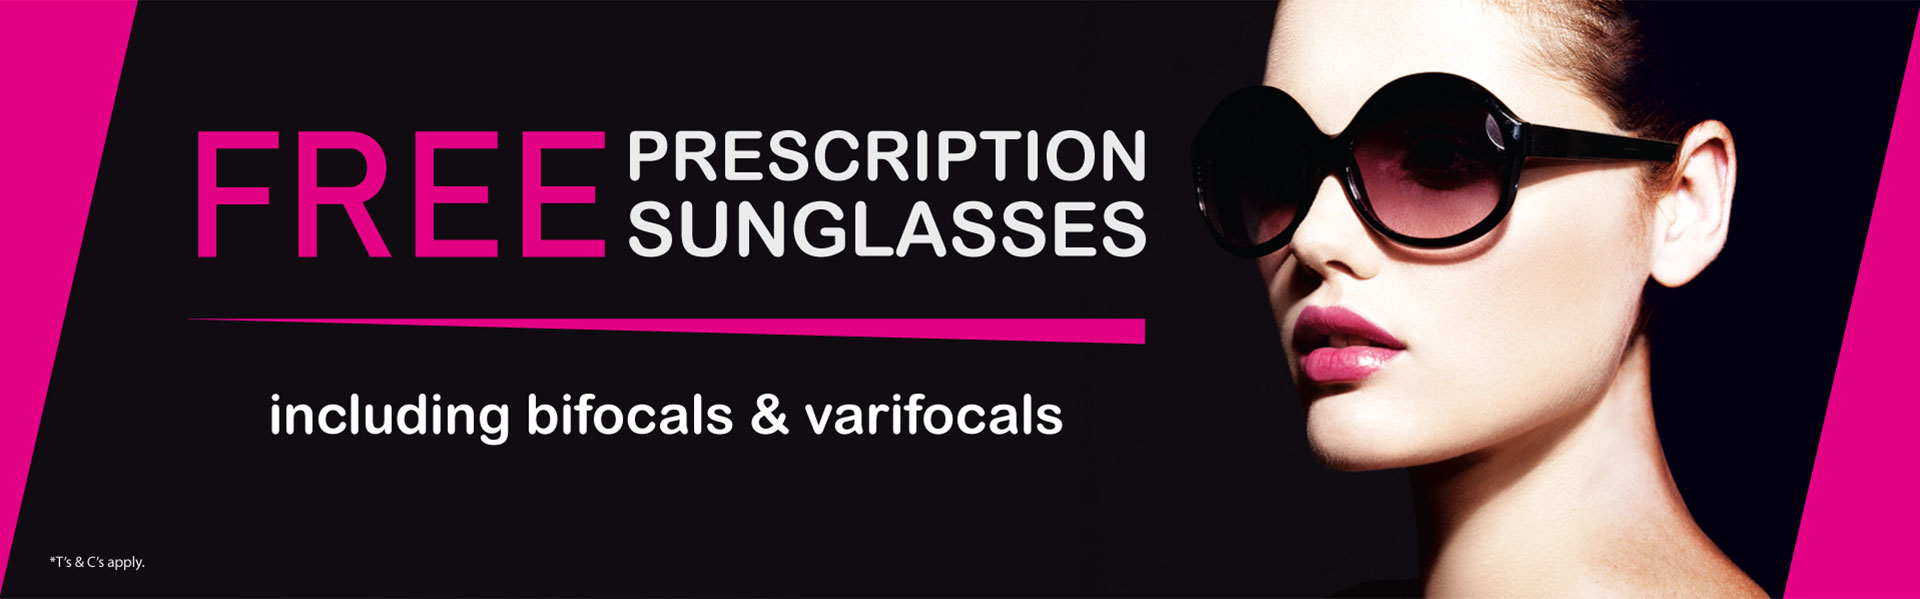 free prescription sunglasses banner